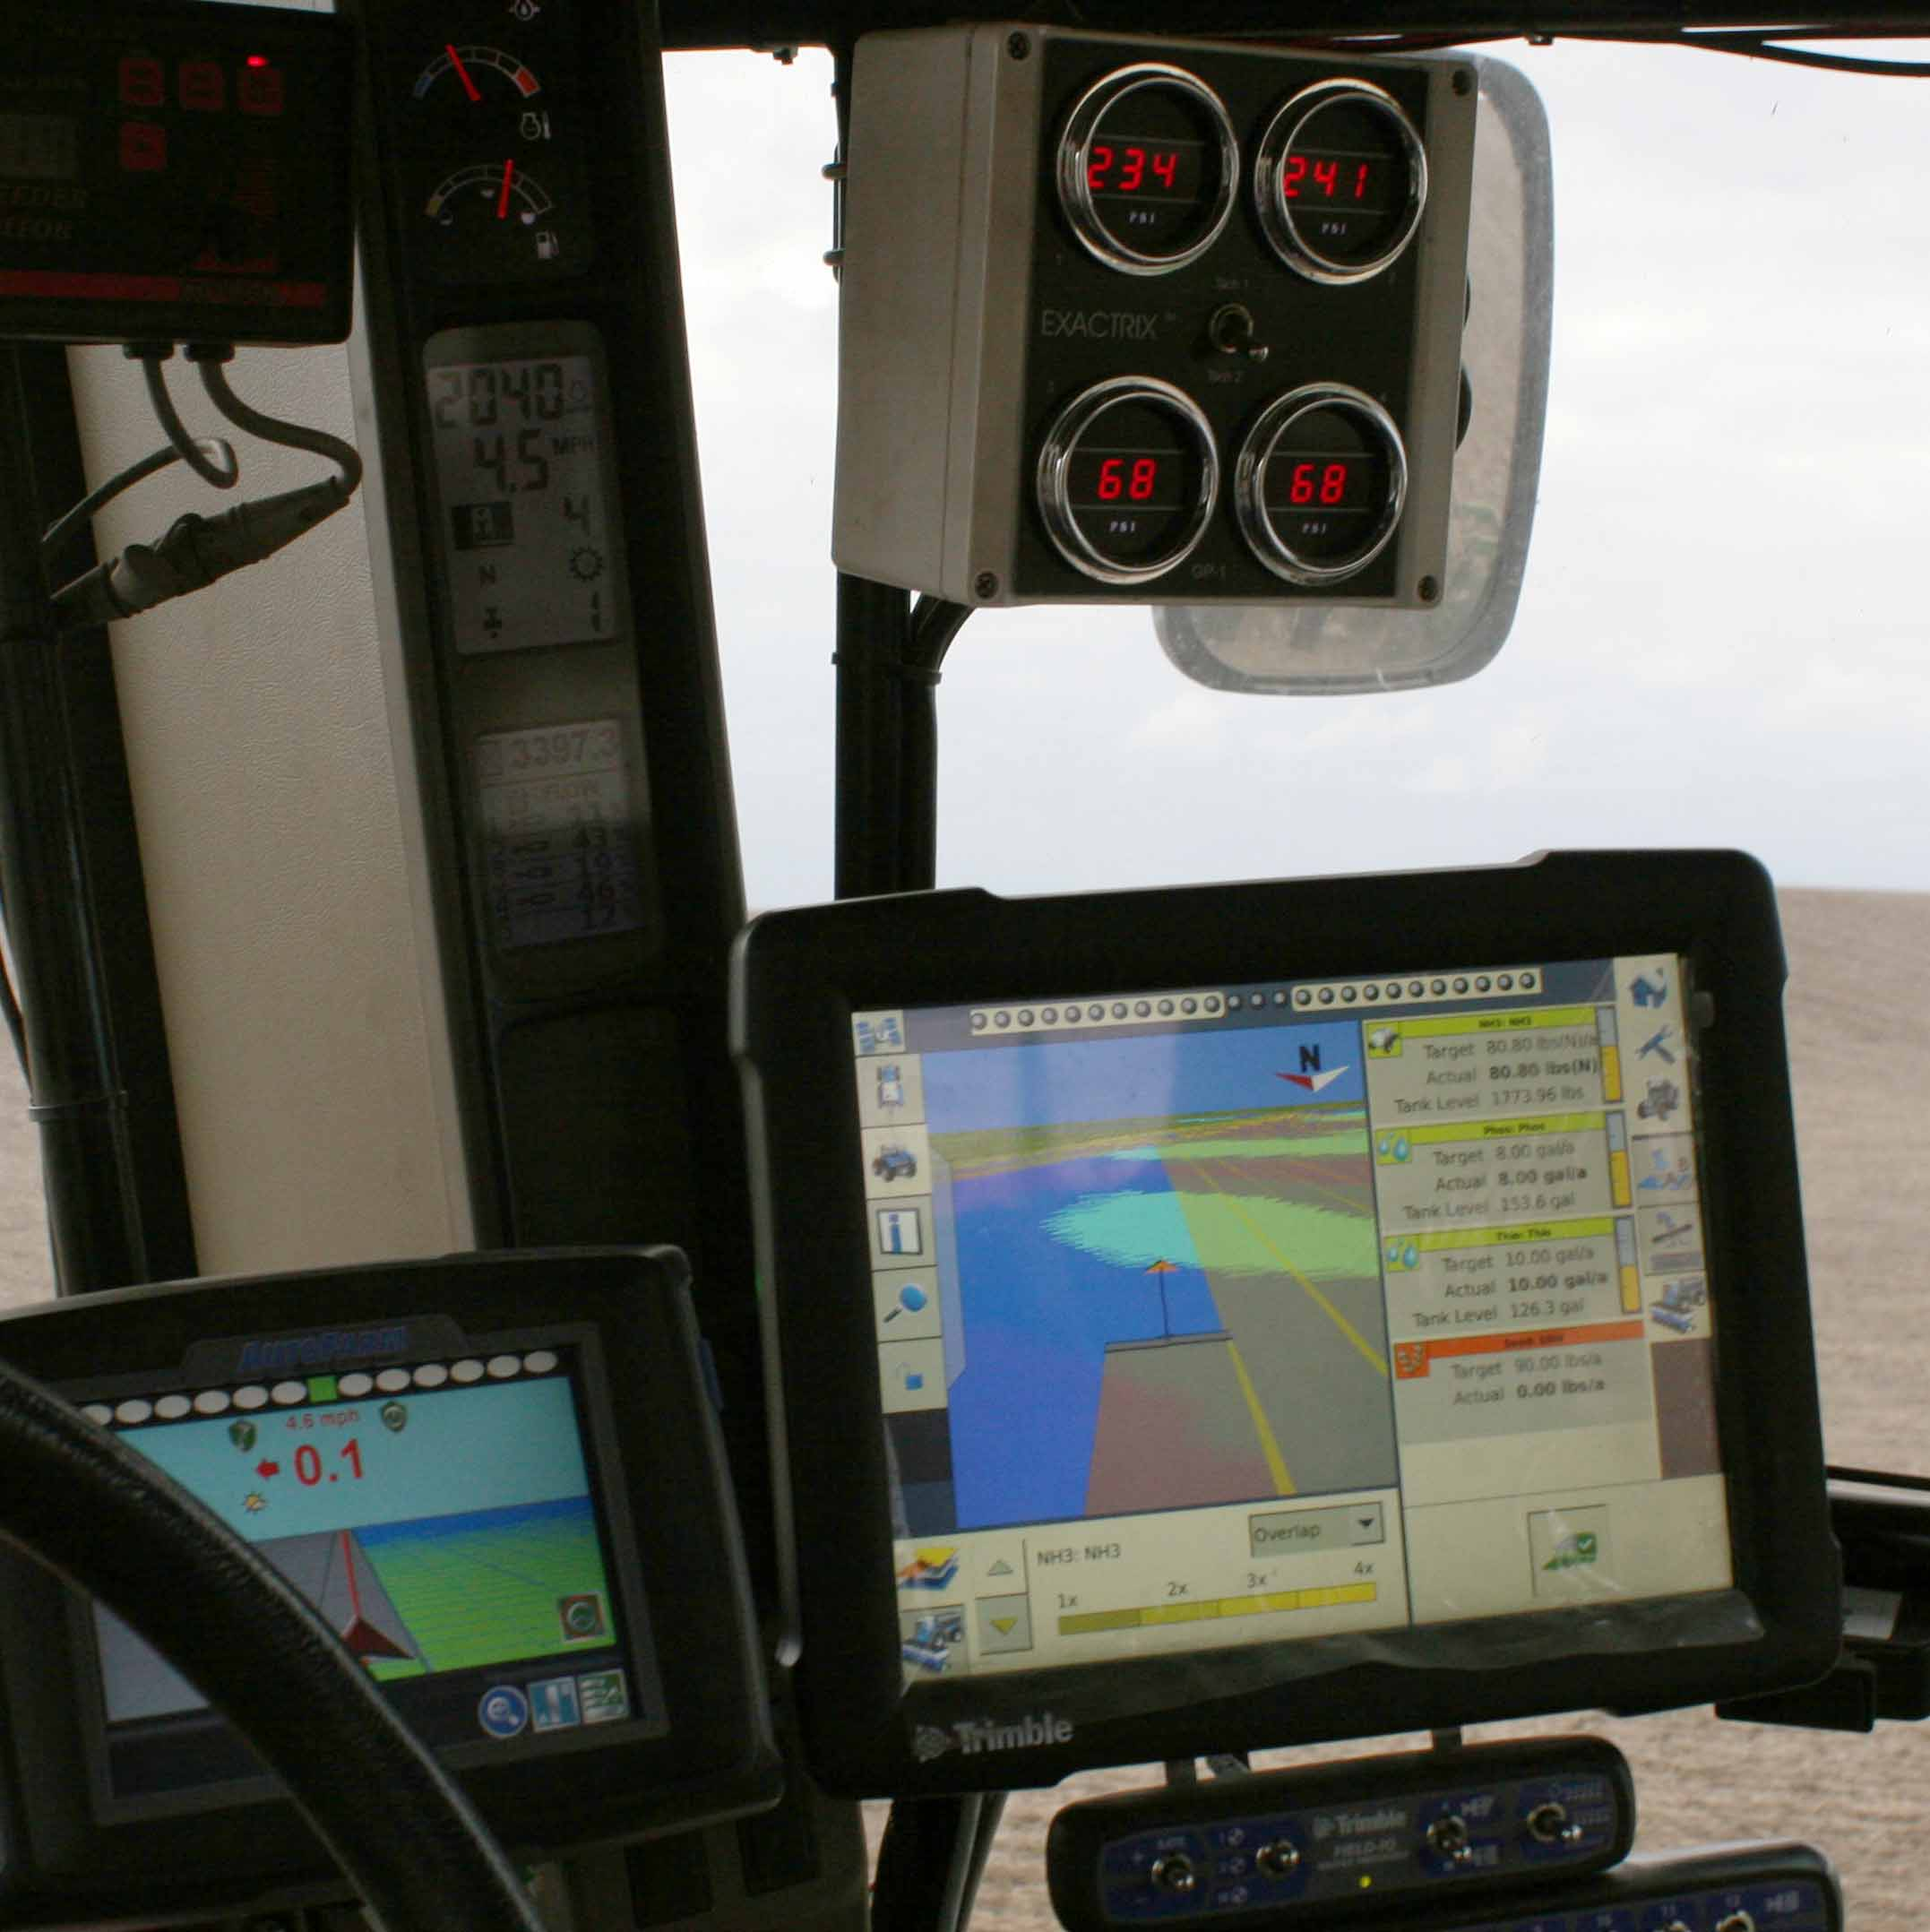 On tractor yield and guidance